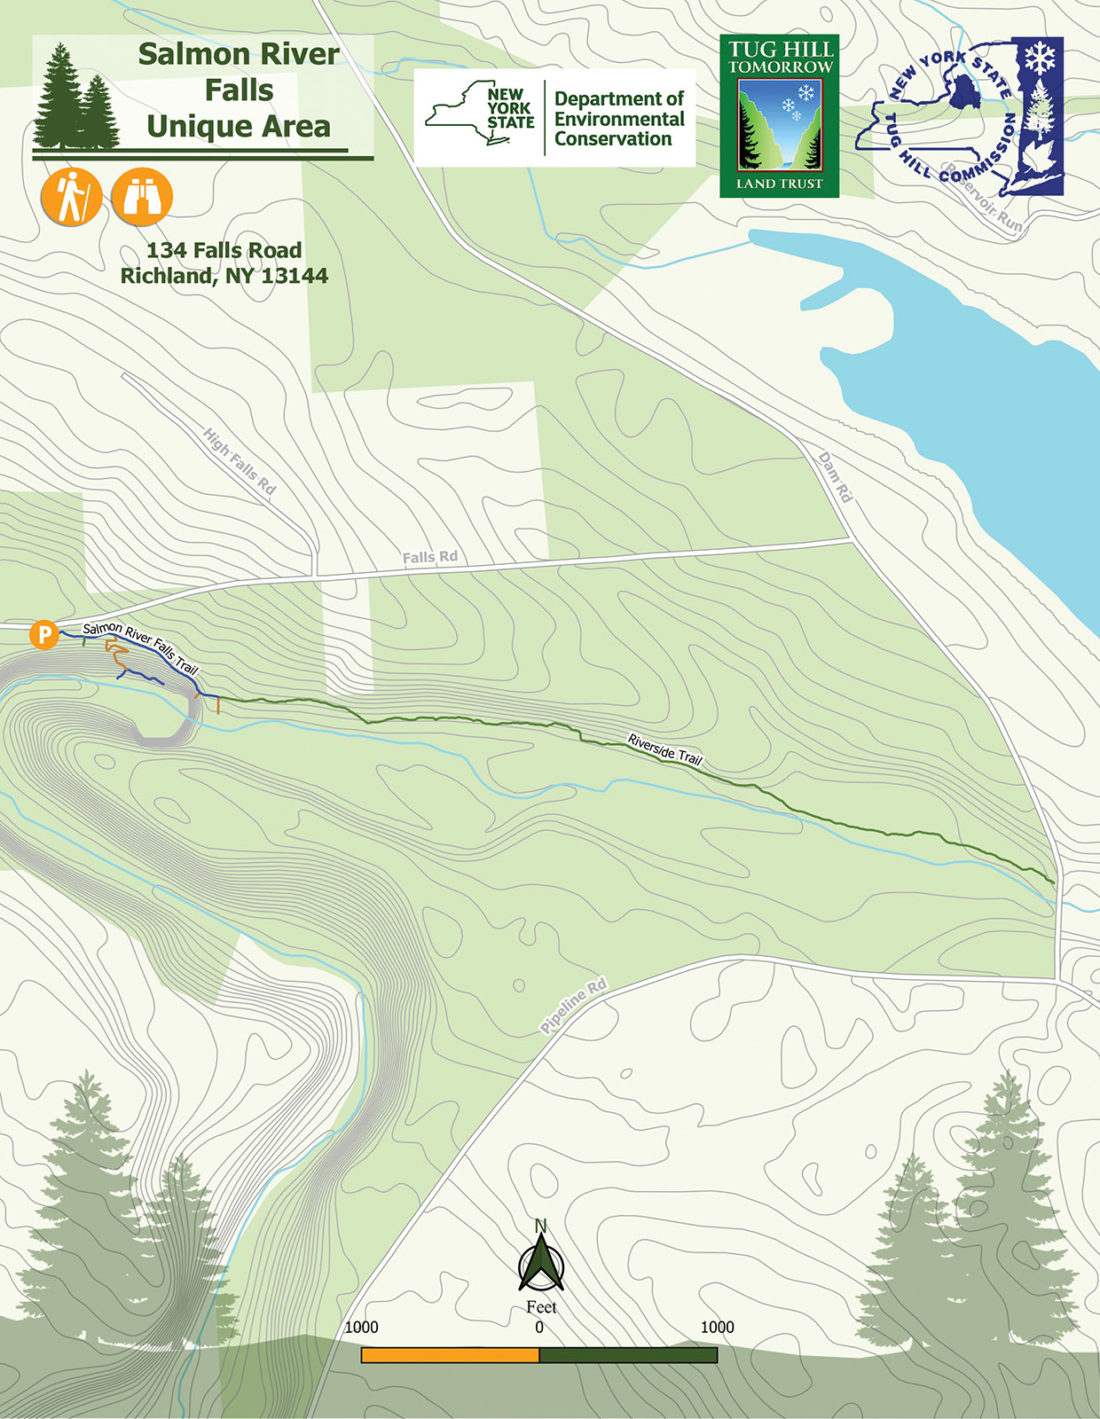 Salmon River Falls Map